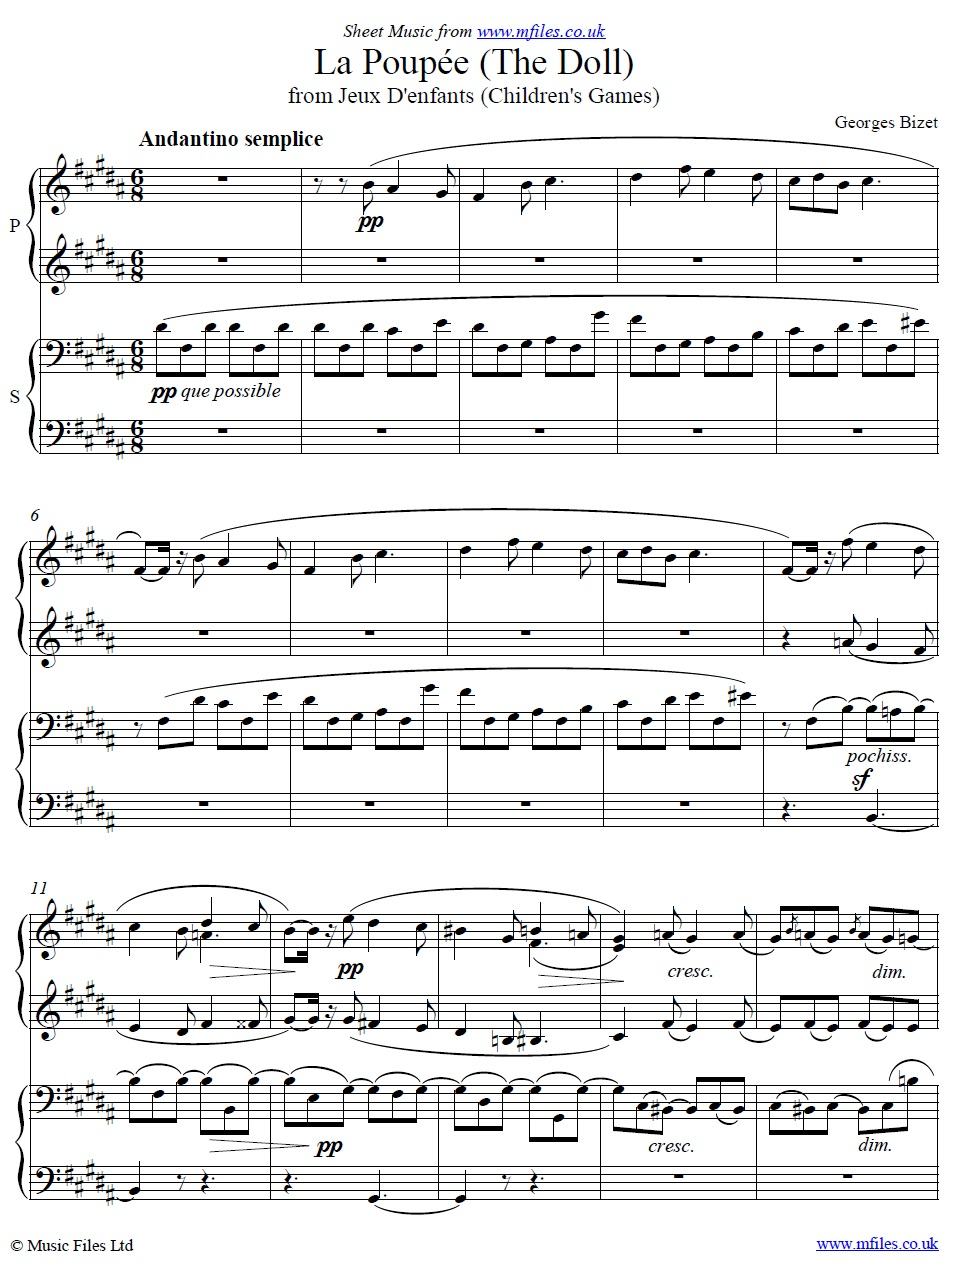 Bizet's La Poupée (The Doll) from Jeux d'Enfants (Piano Duet) - sheet music 1st page